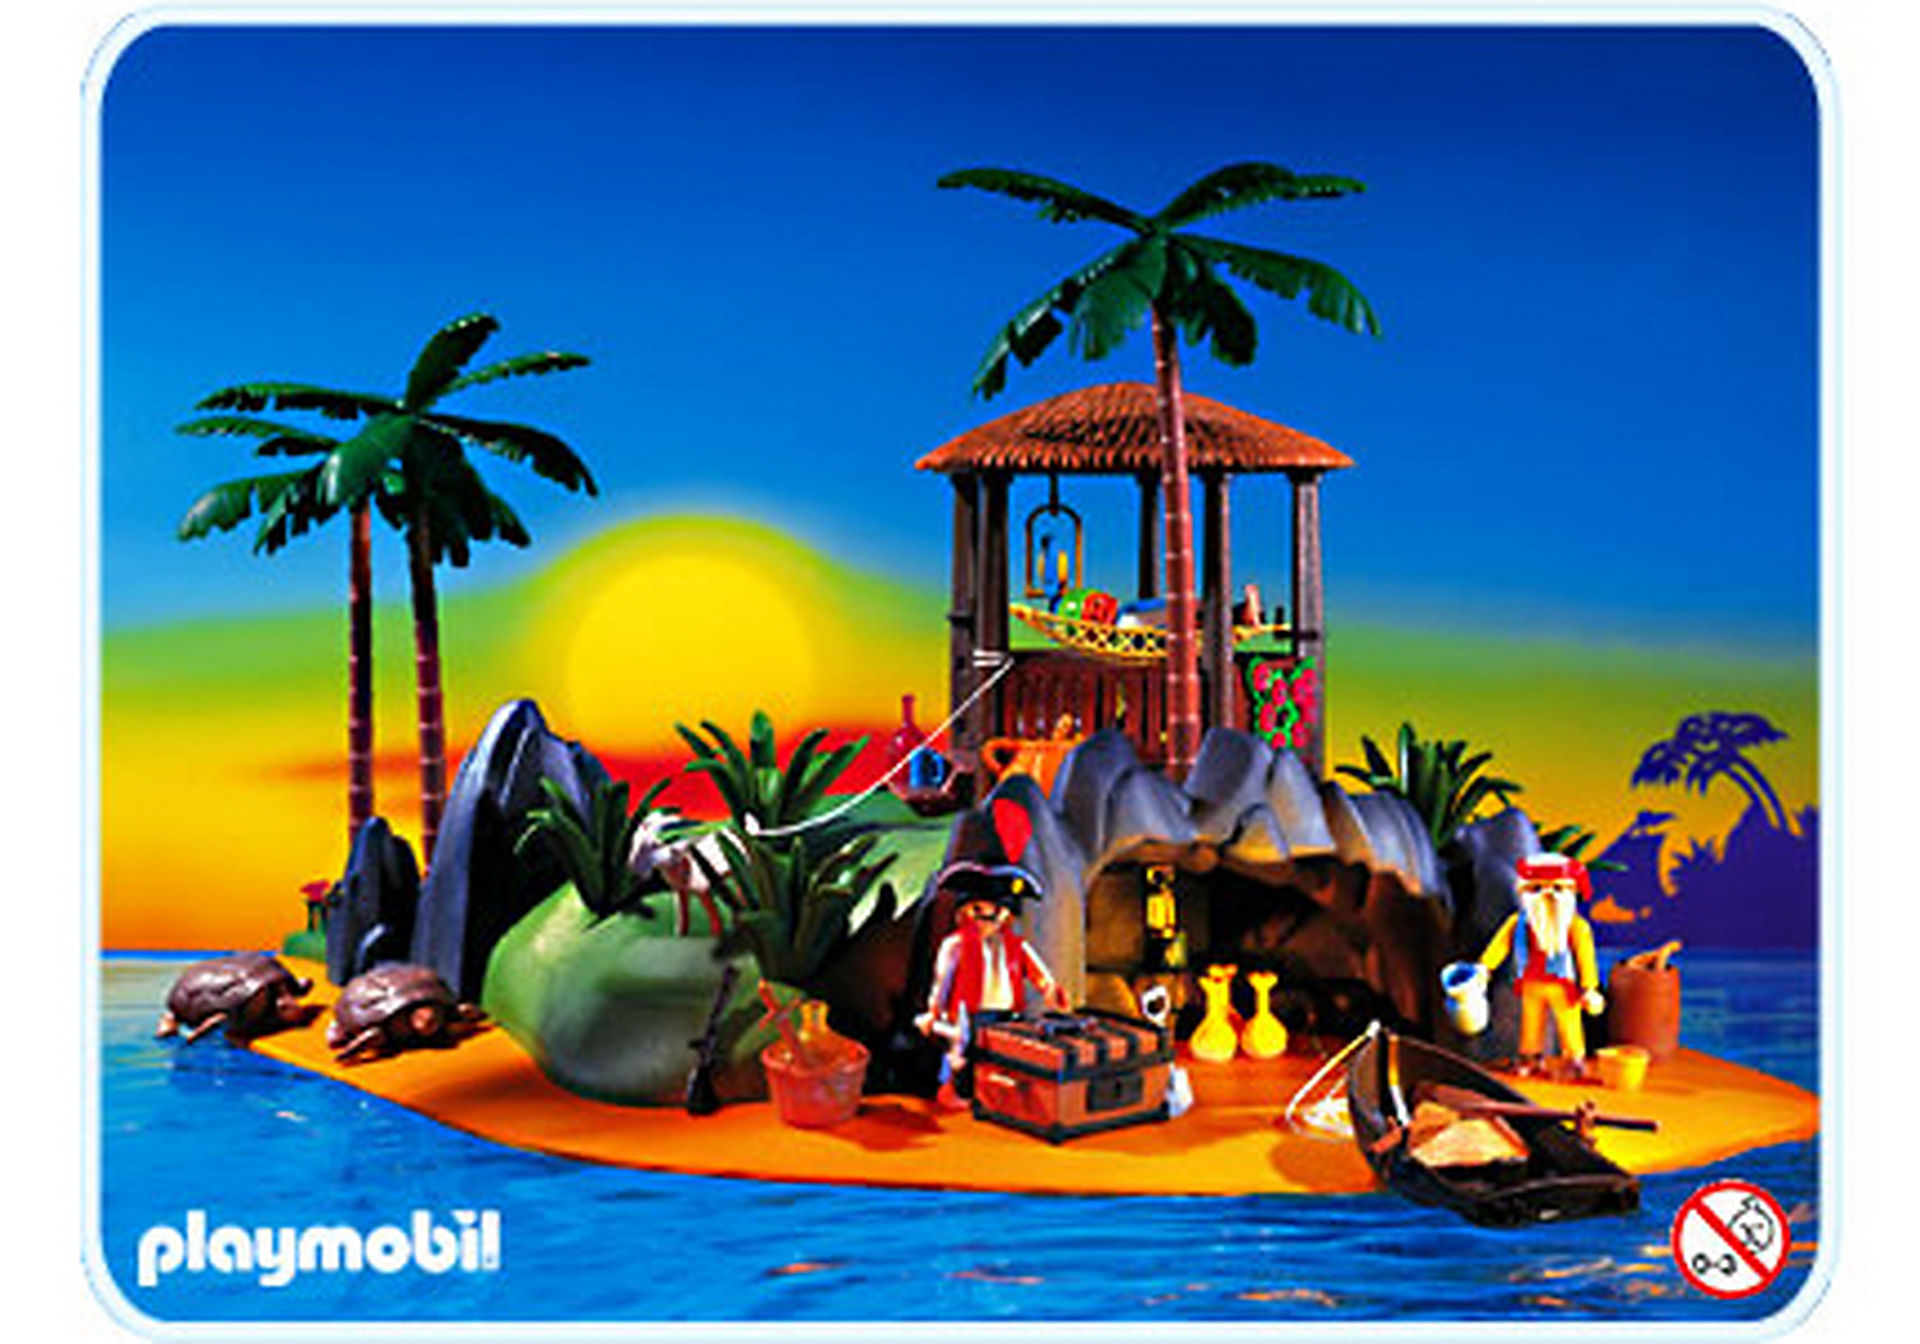 http://media.playmobil.com/i/playmobil/3799-A_product_detail/Schatzinsel